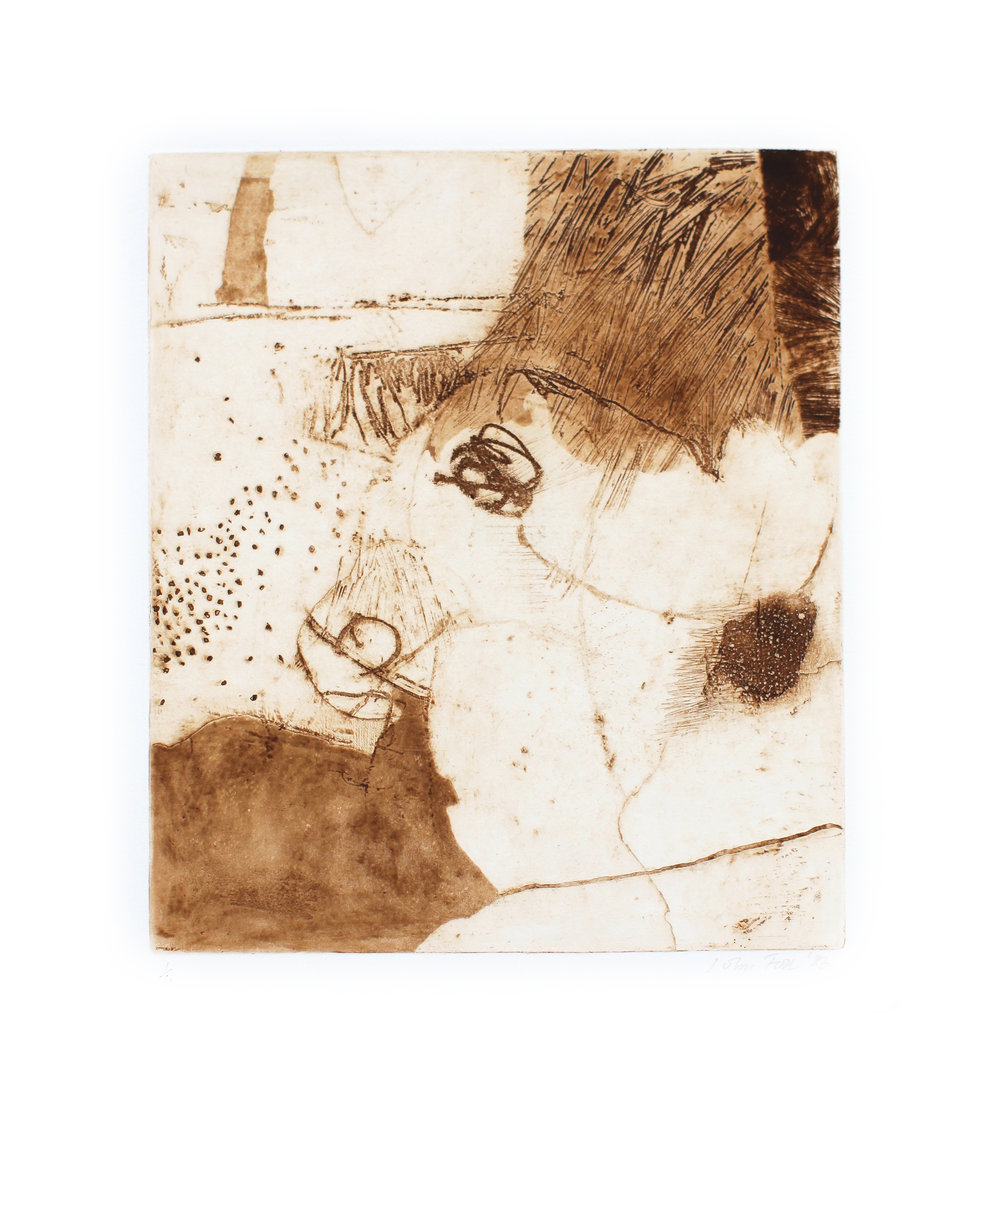 1986_Untitled_etching_drypoint_and_aquatint_26x20in_WPNF011.jpg